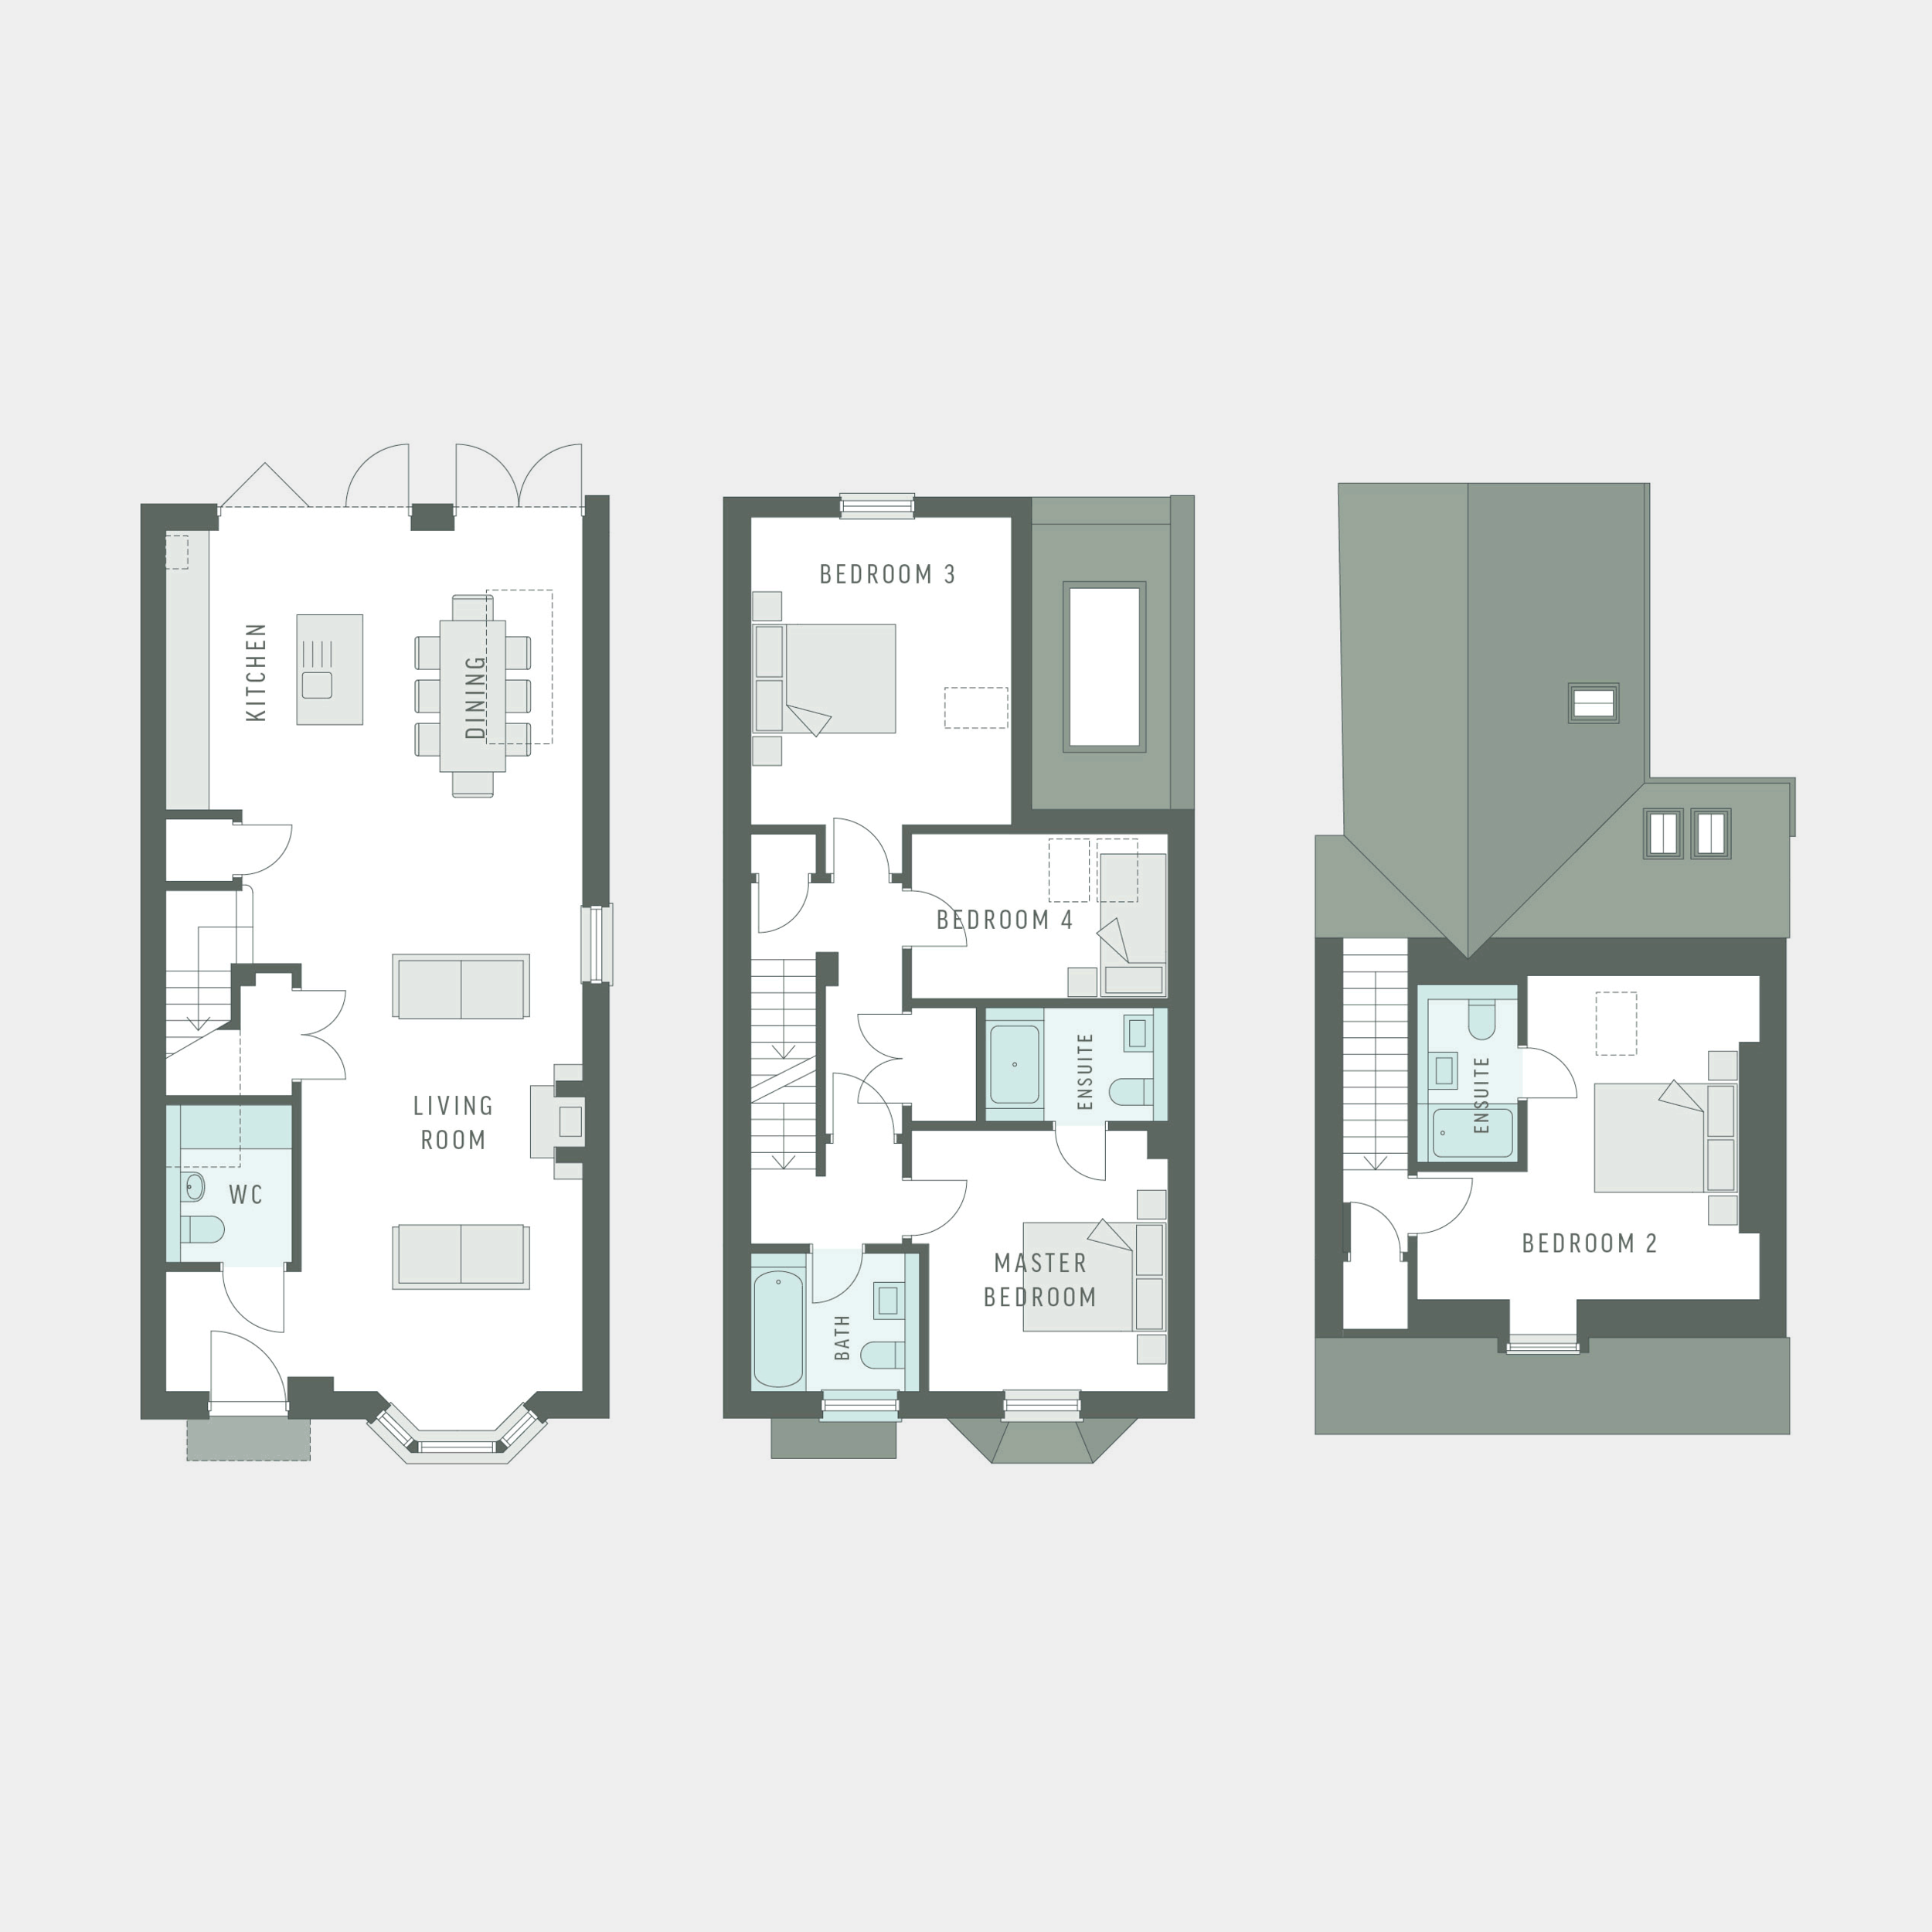 Home-2-Union-House-Floor-Plans.png